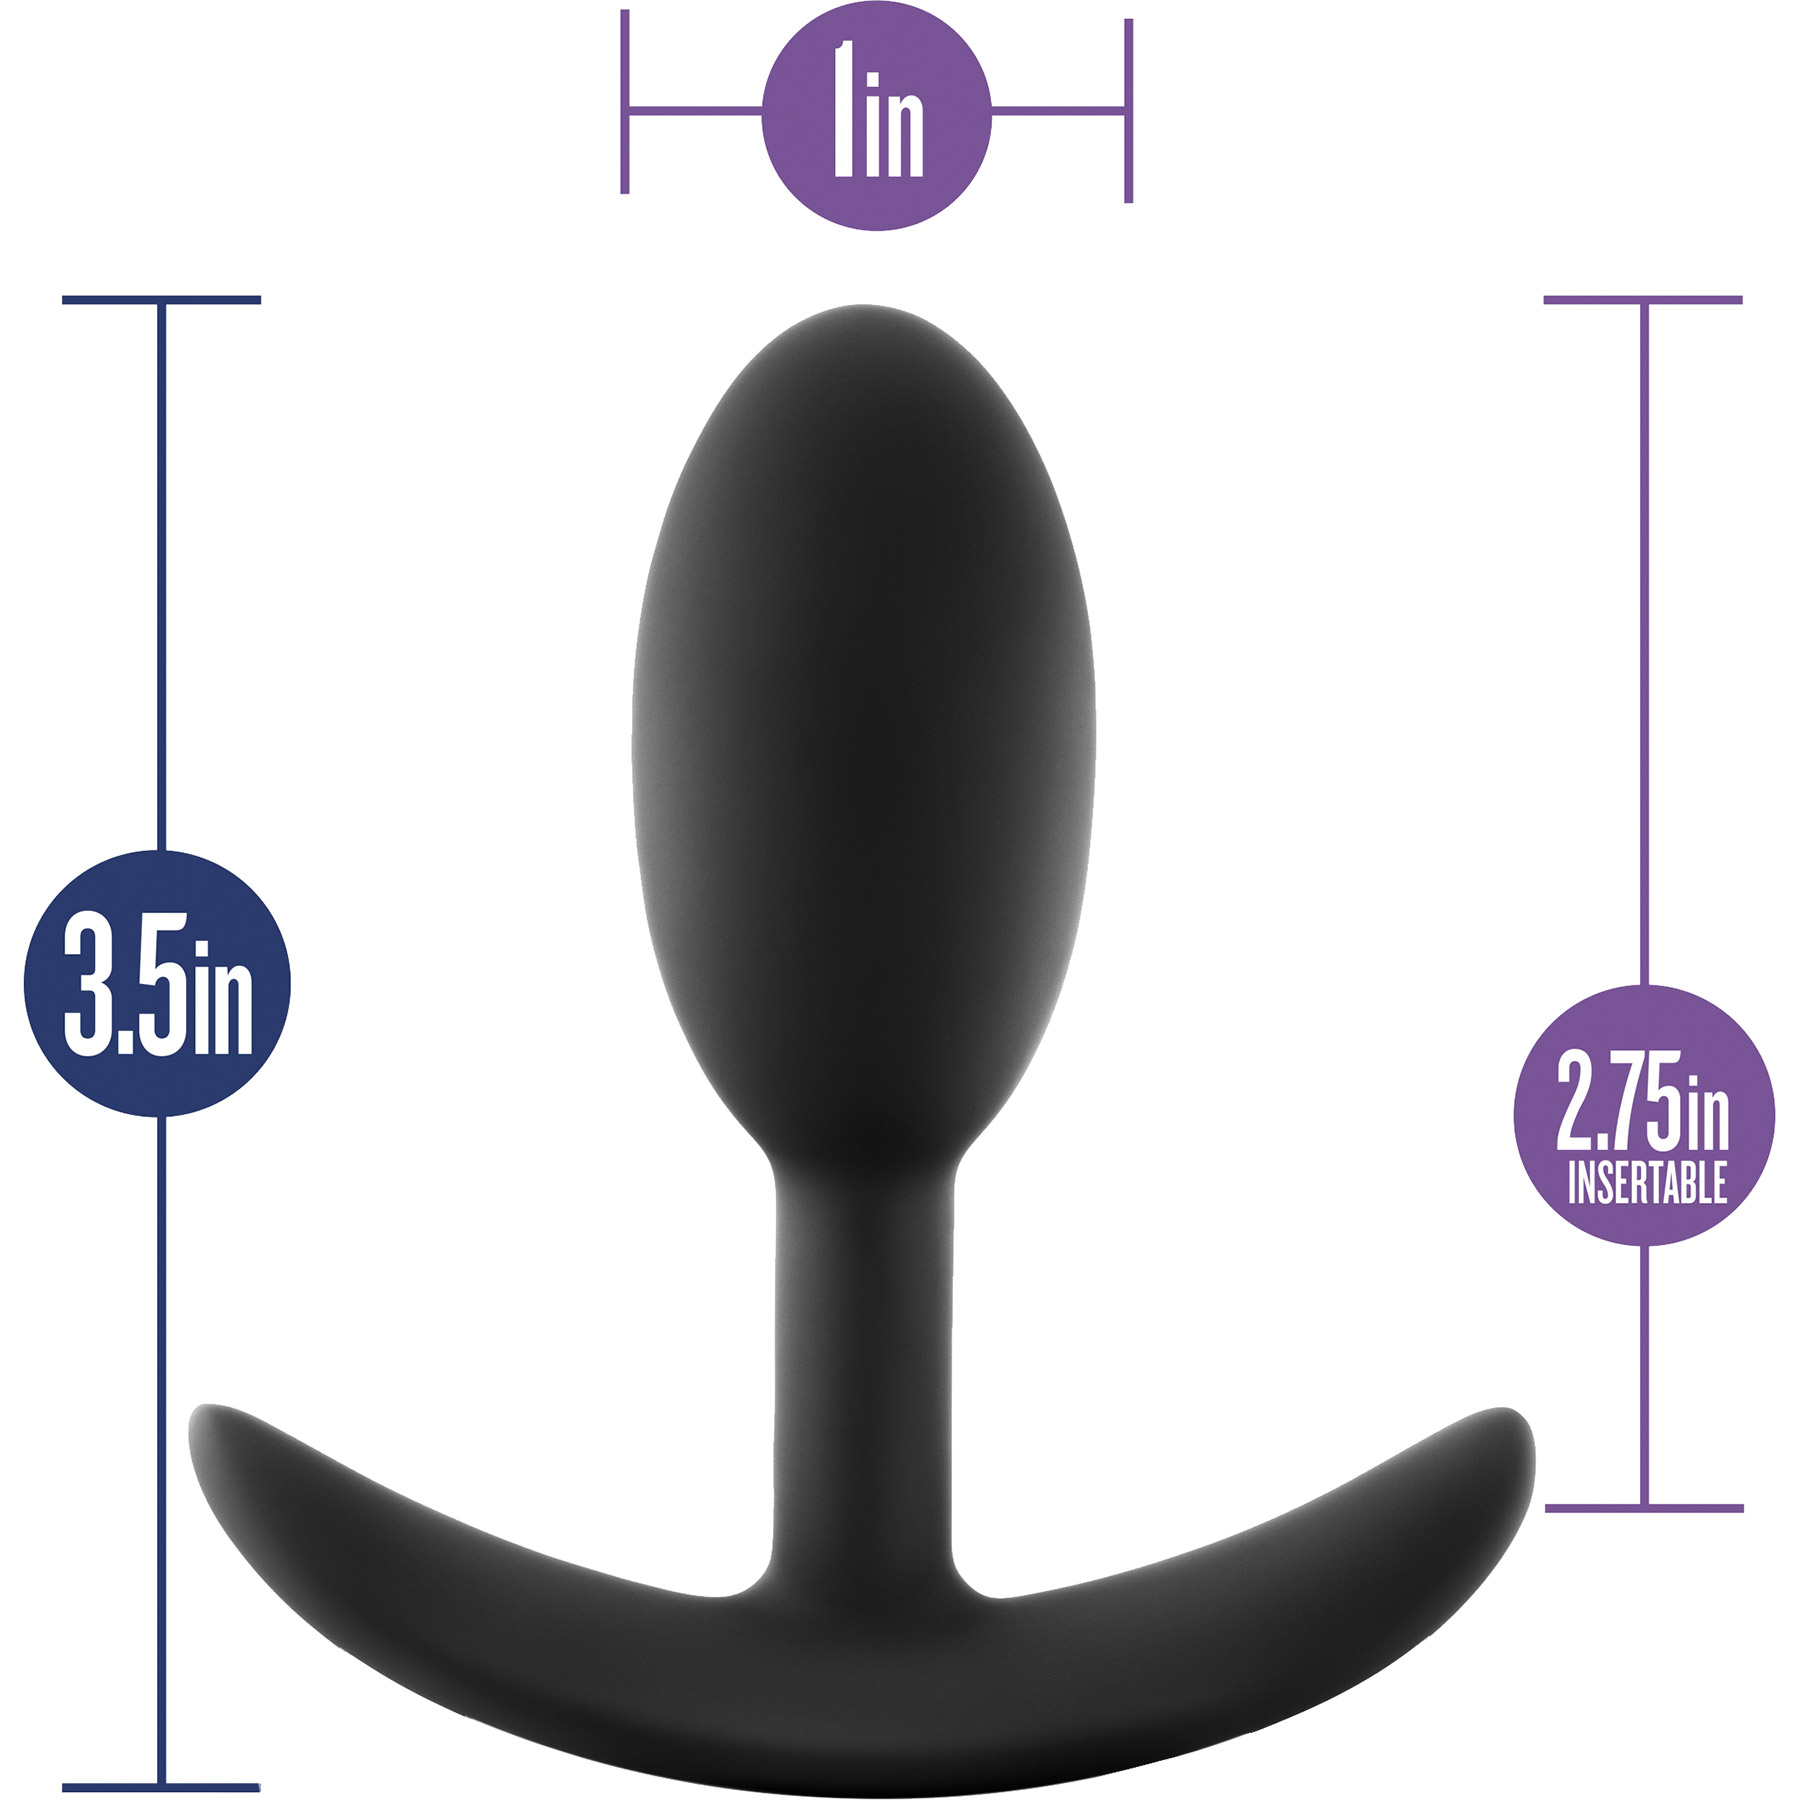 Luxe Wearable Silicone Vibra Slim Butt Plug by Blush, Small - Measurements